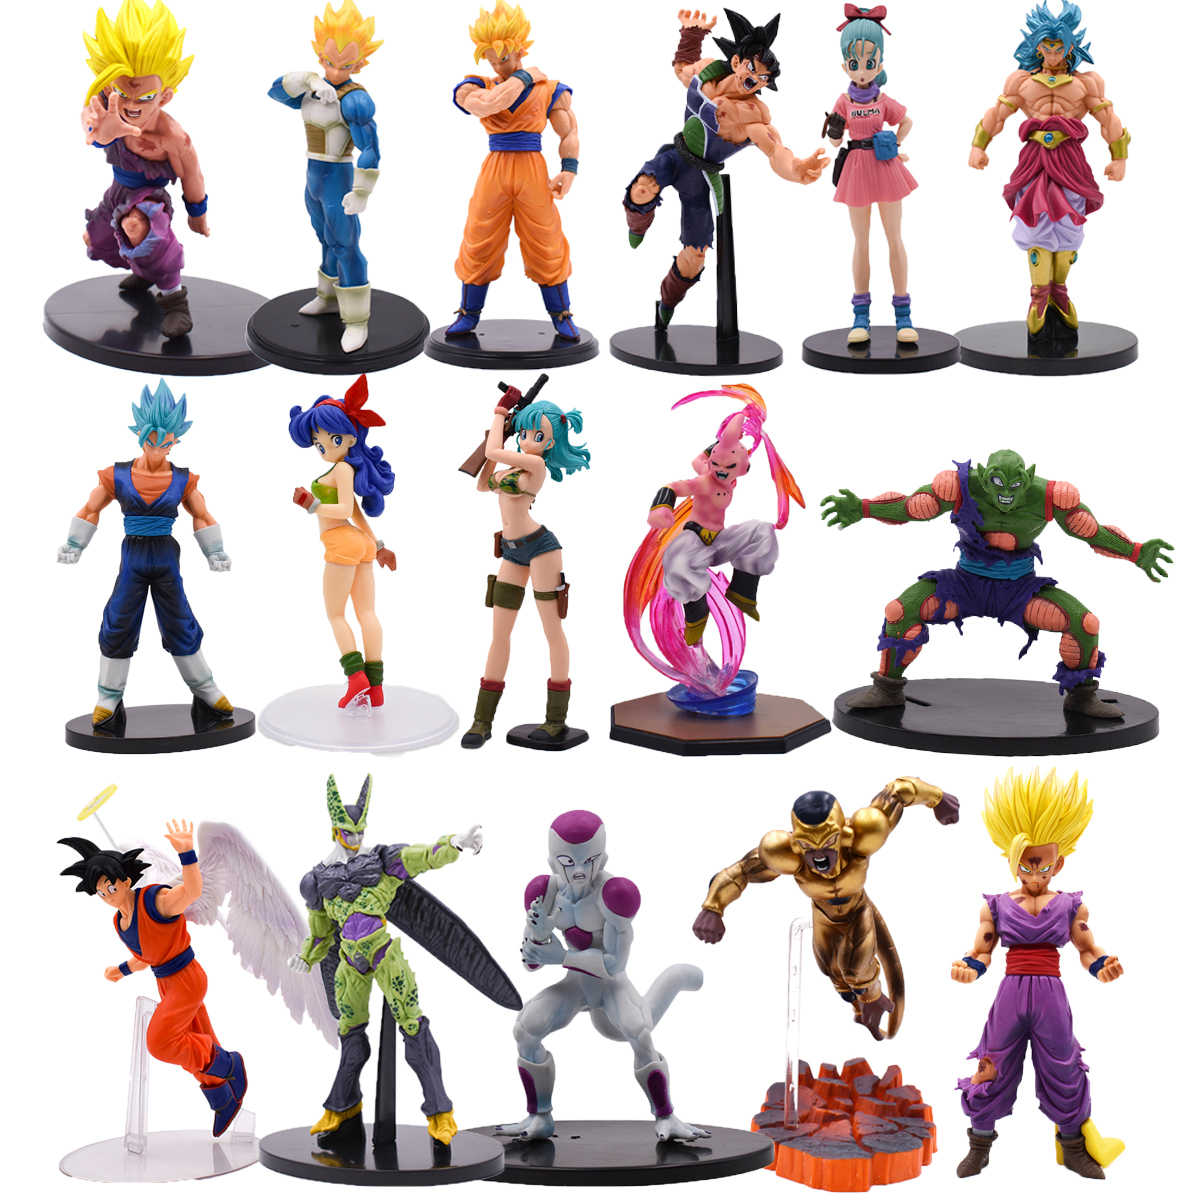 Anime Brinquedos Super Saiyan Son Goku Gohan Vegeta Klit Buruma Frieza Broli Cellfigure Dragon Ball Z Pvc Action Figures Speelgoed